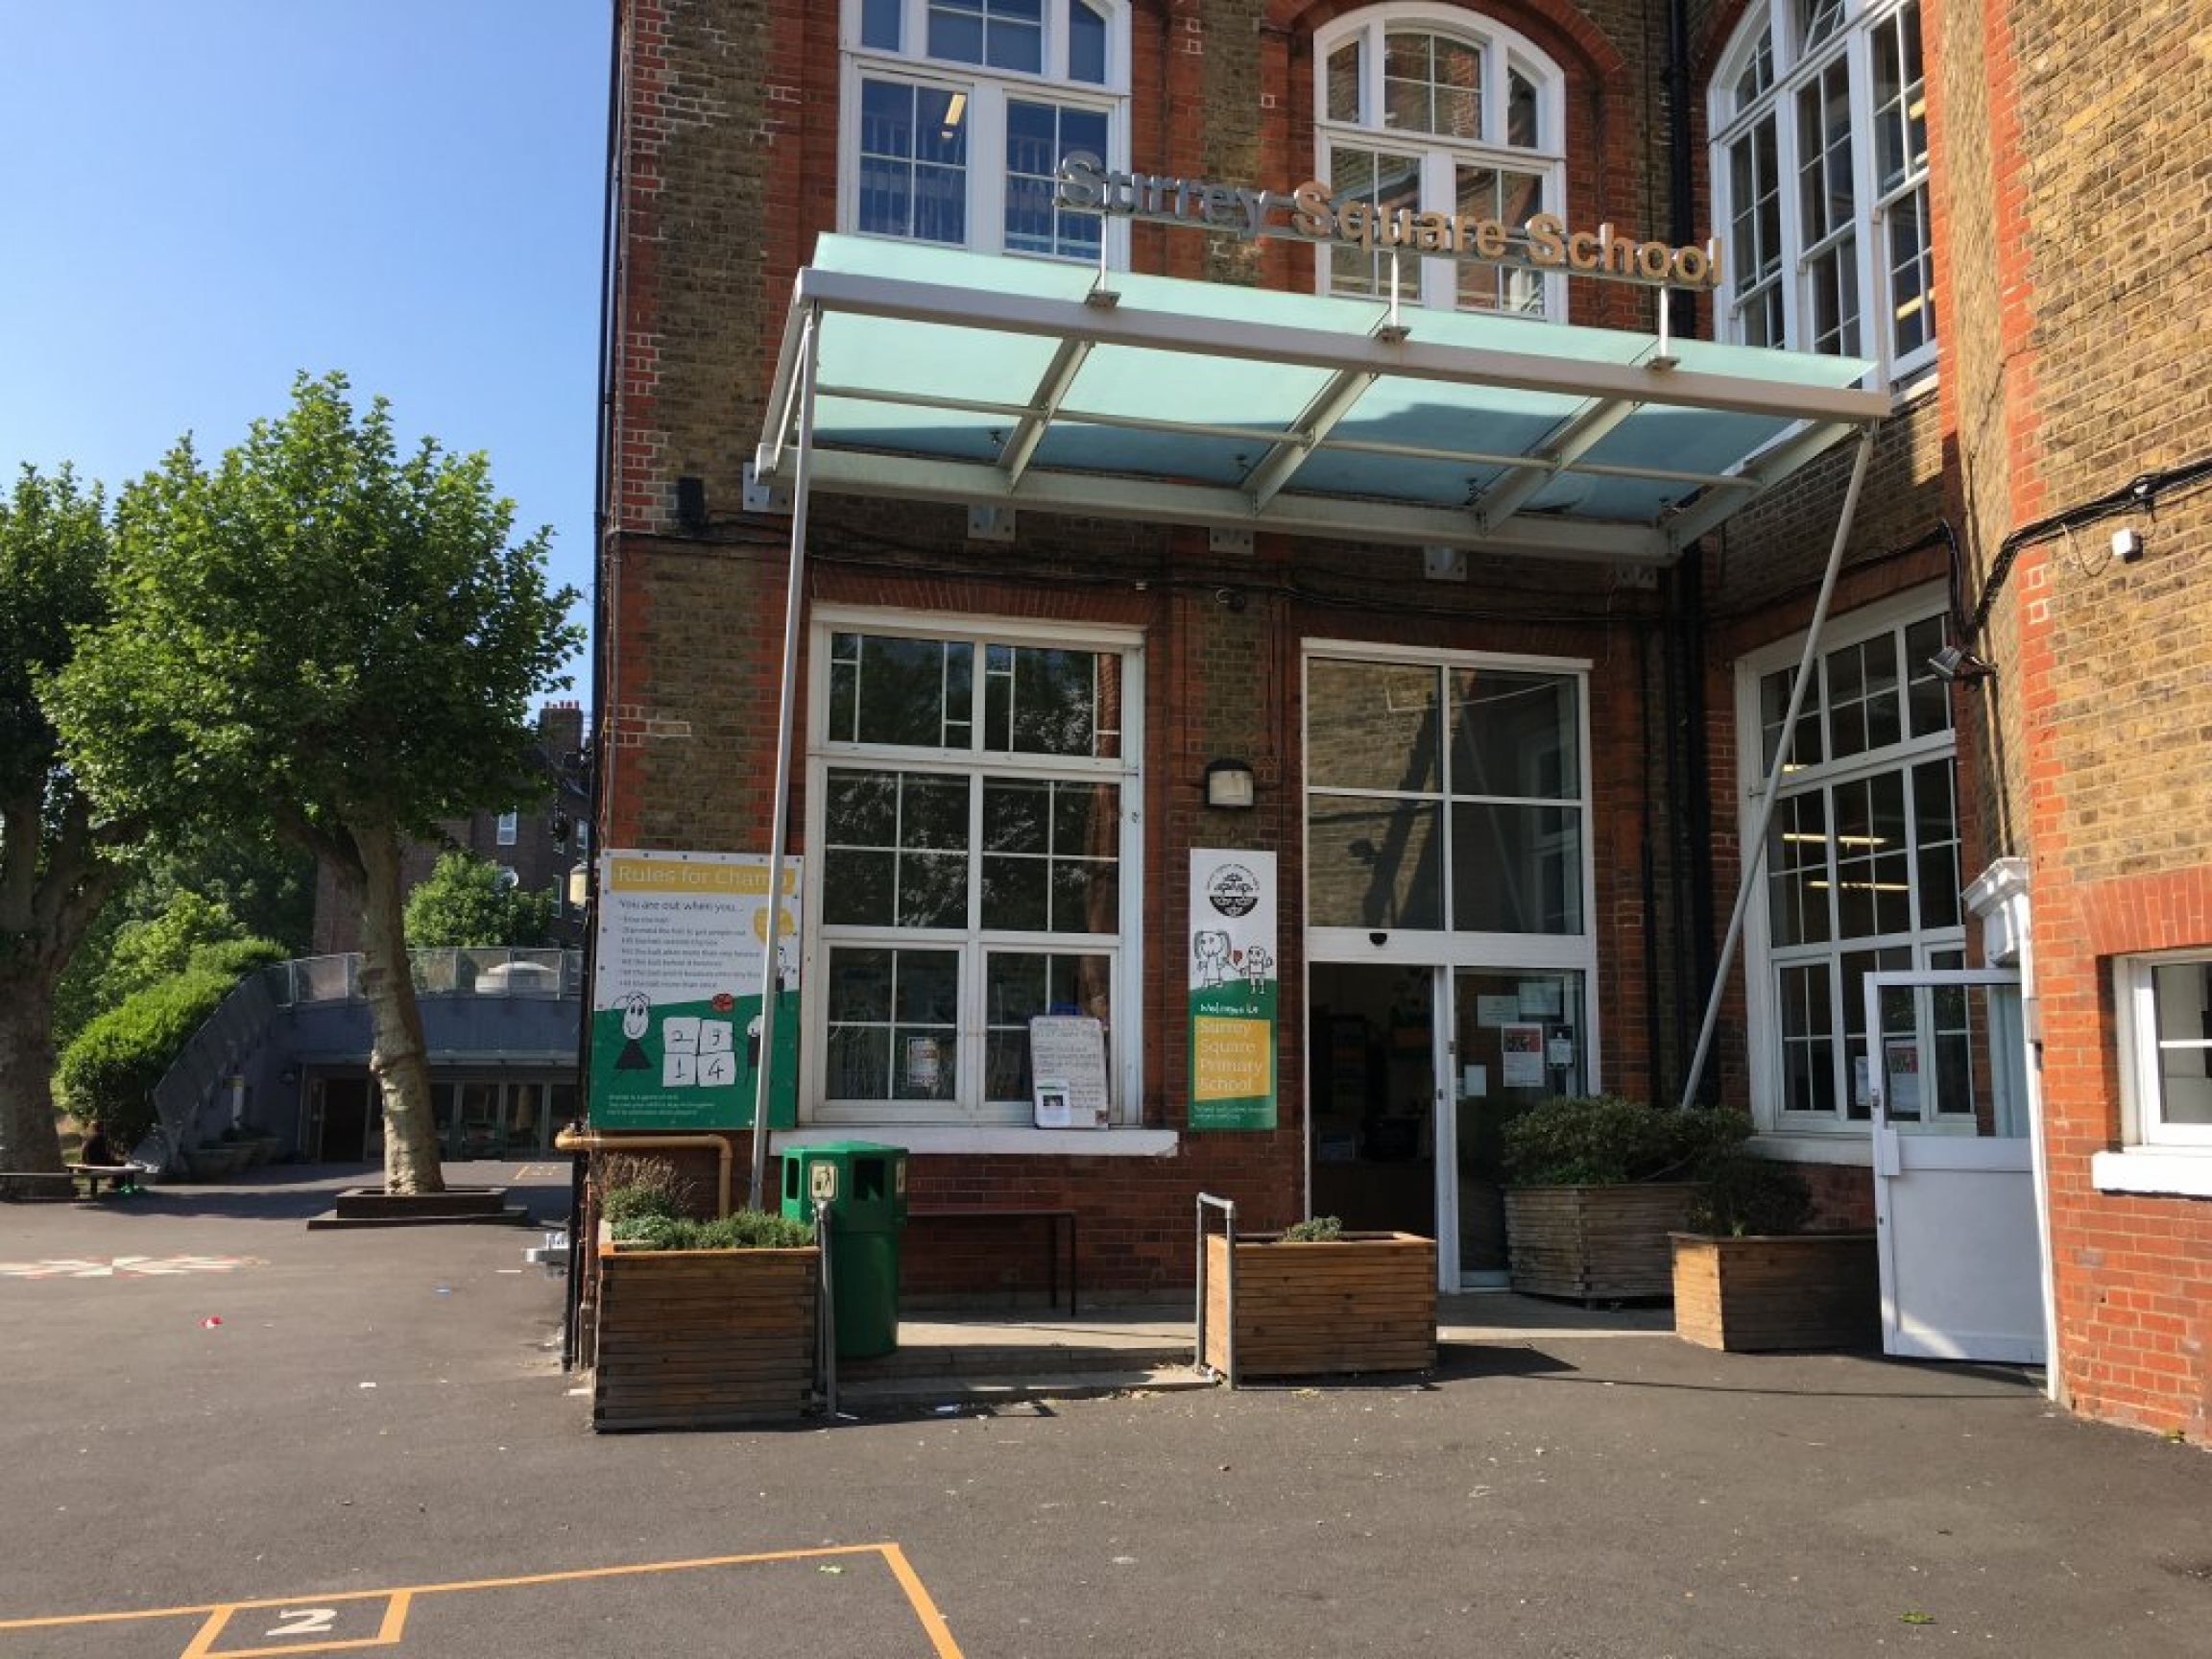 Staff at Surrey Square Primary School, located in southeast London, have been working to provide food for their most vulnerable students during the pandemic.